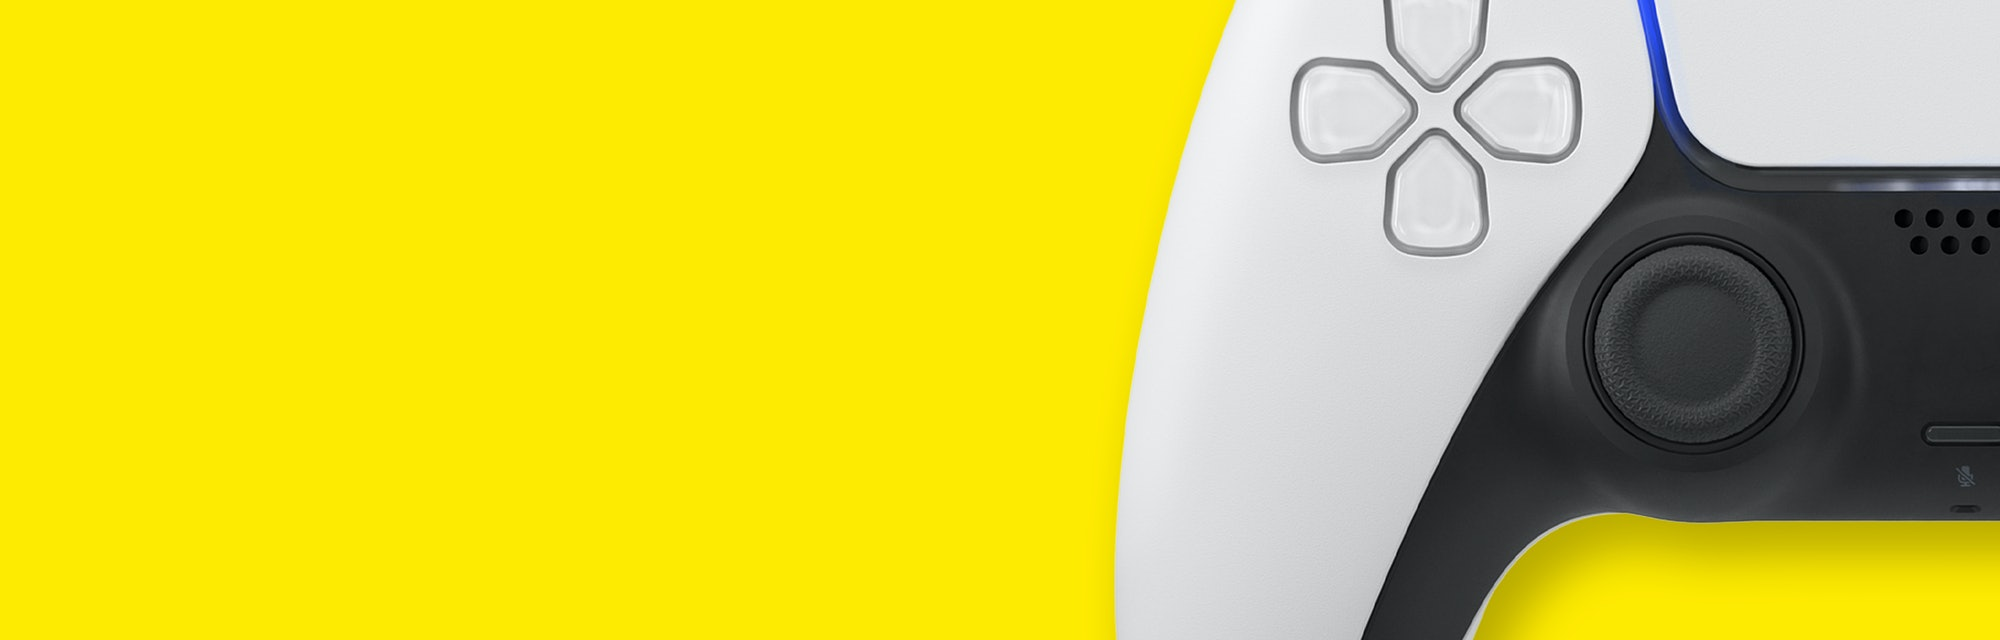 White next gen controller on yellow  background